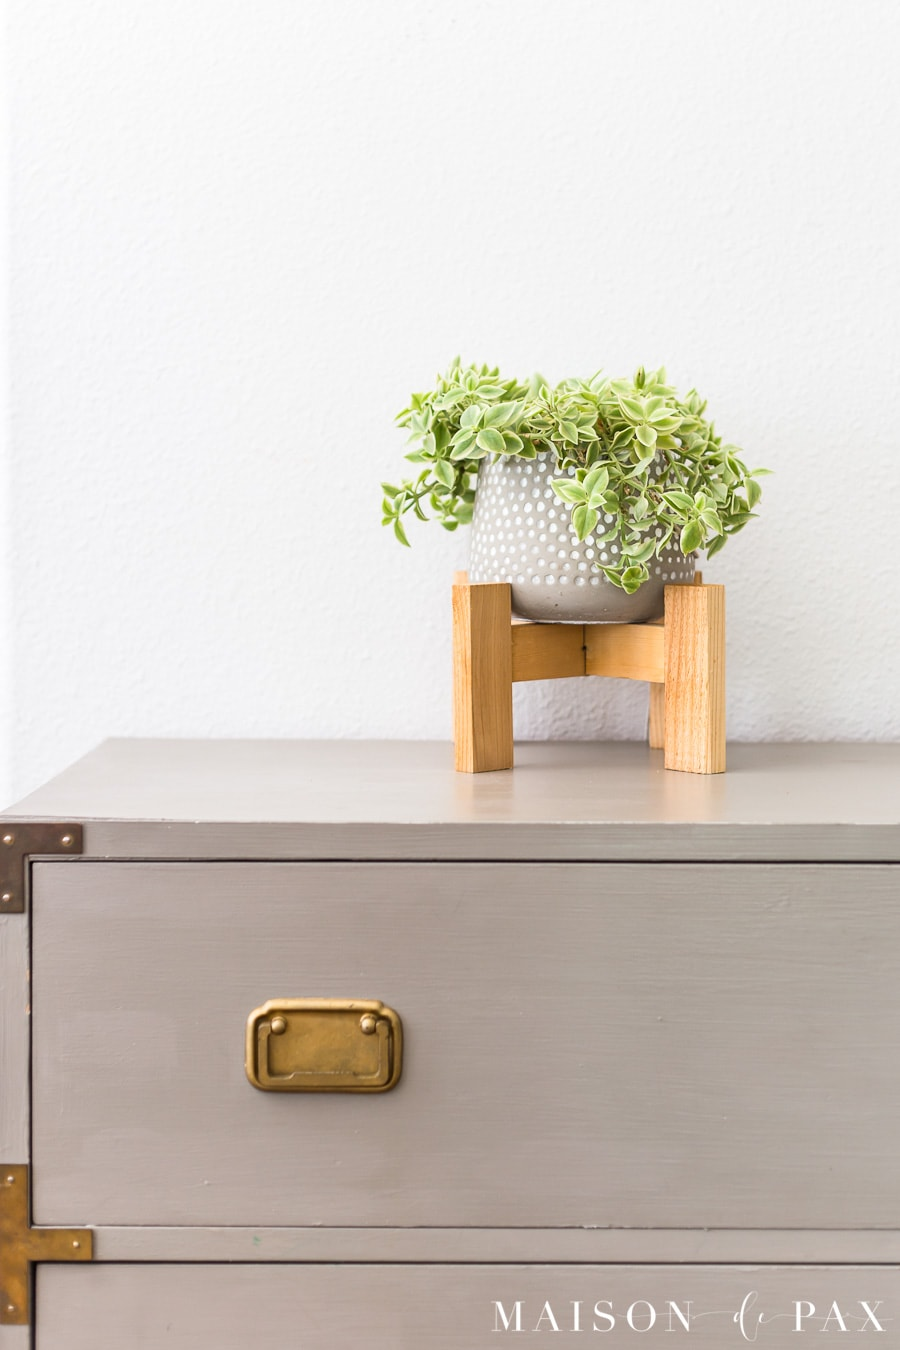 diy plant stand for small pot on top of gray campaign dresser | Maison de Pax